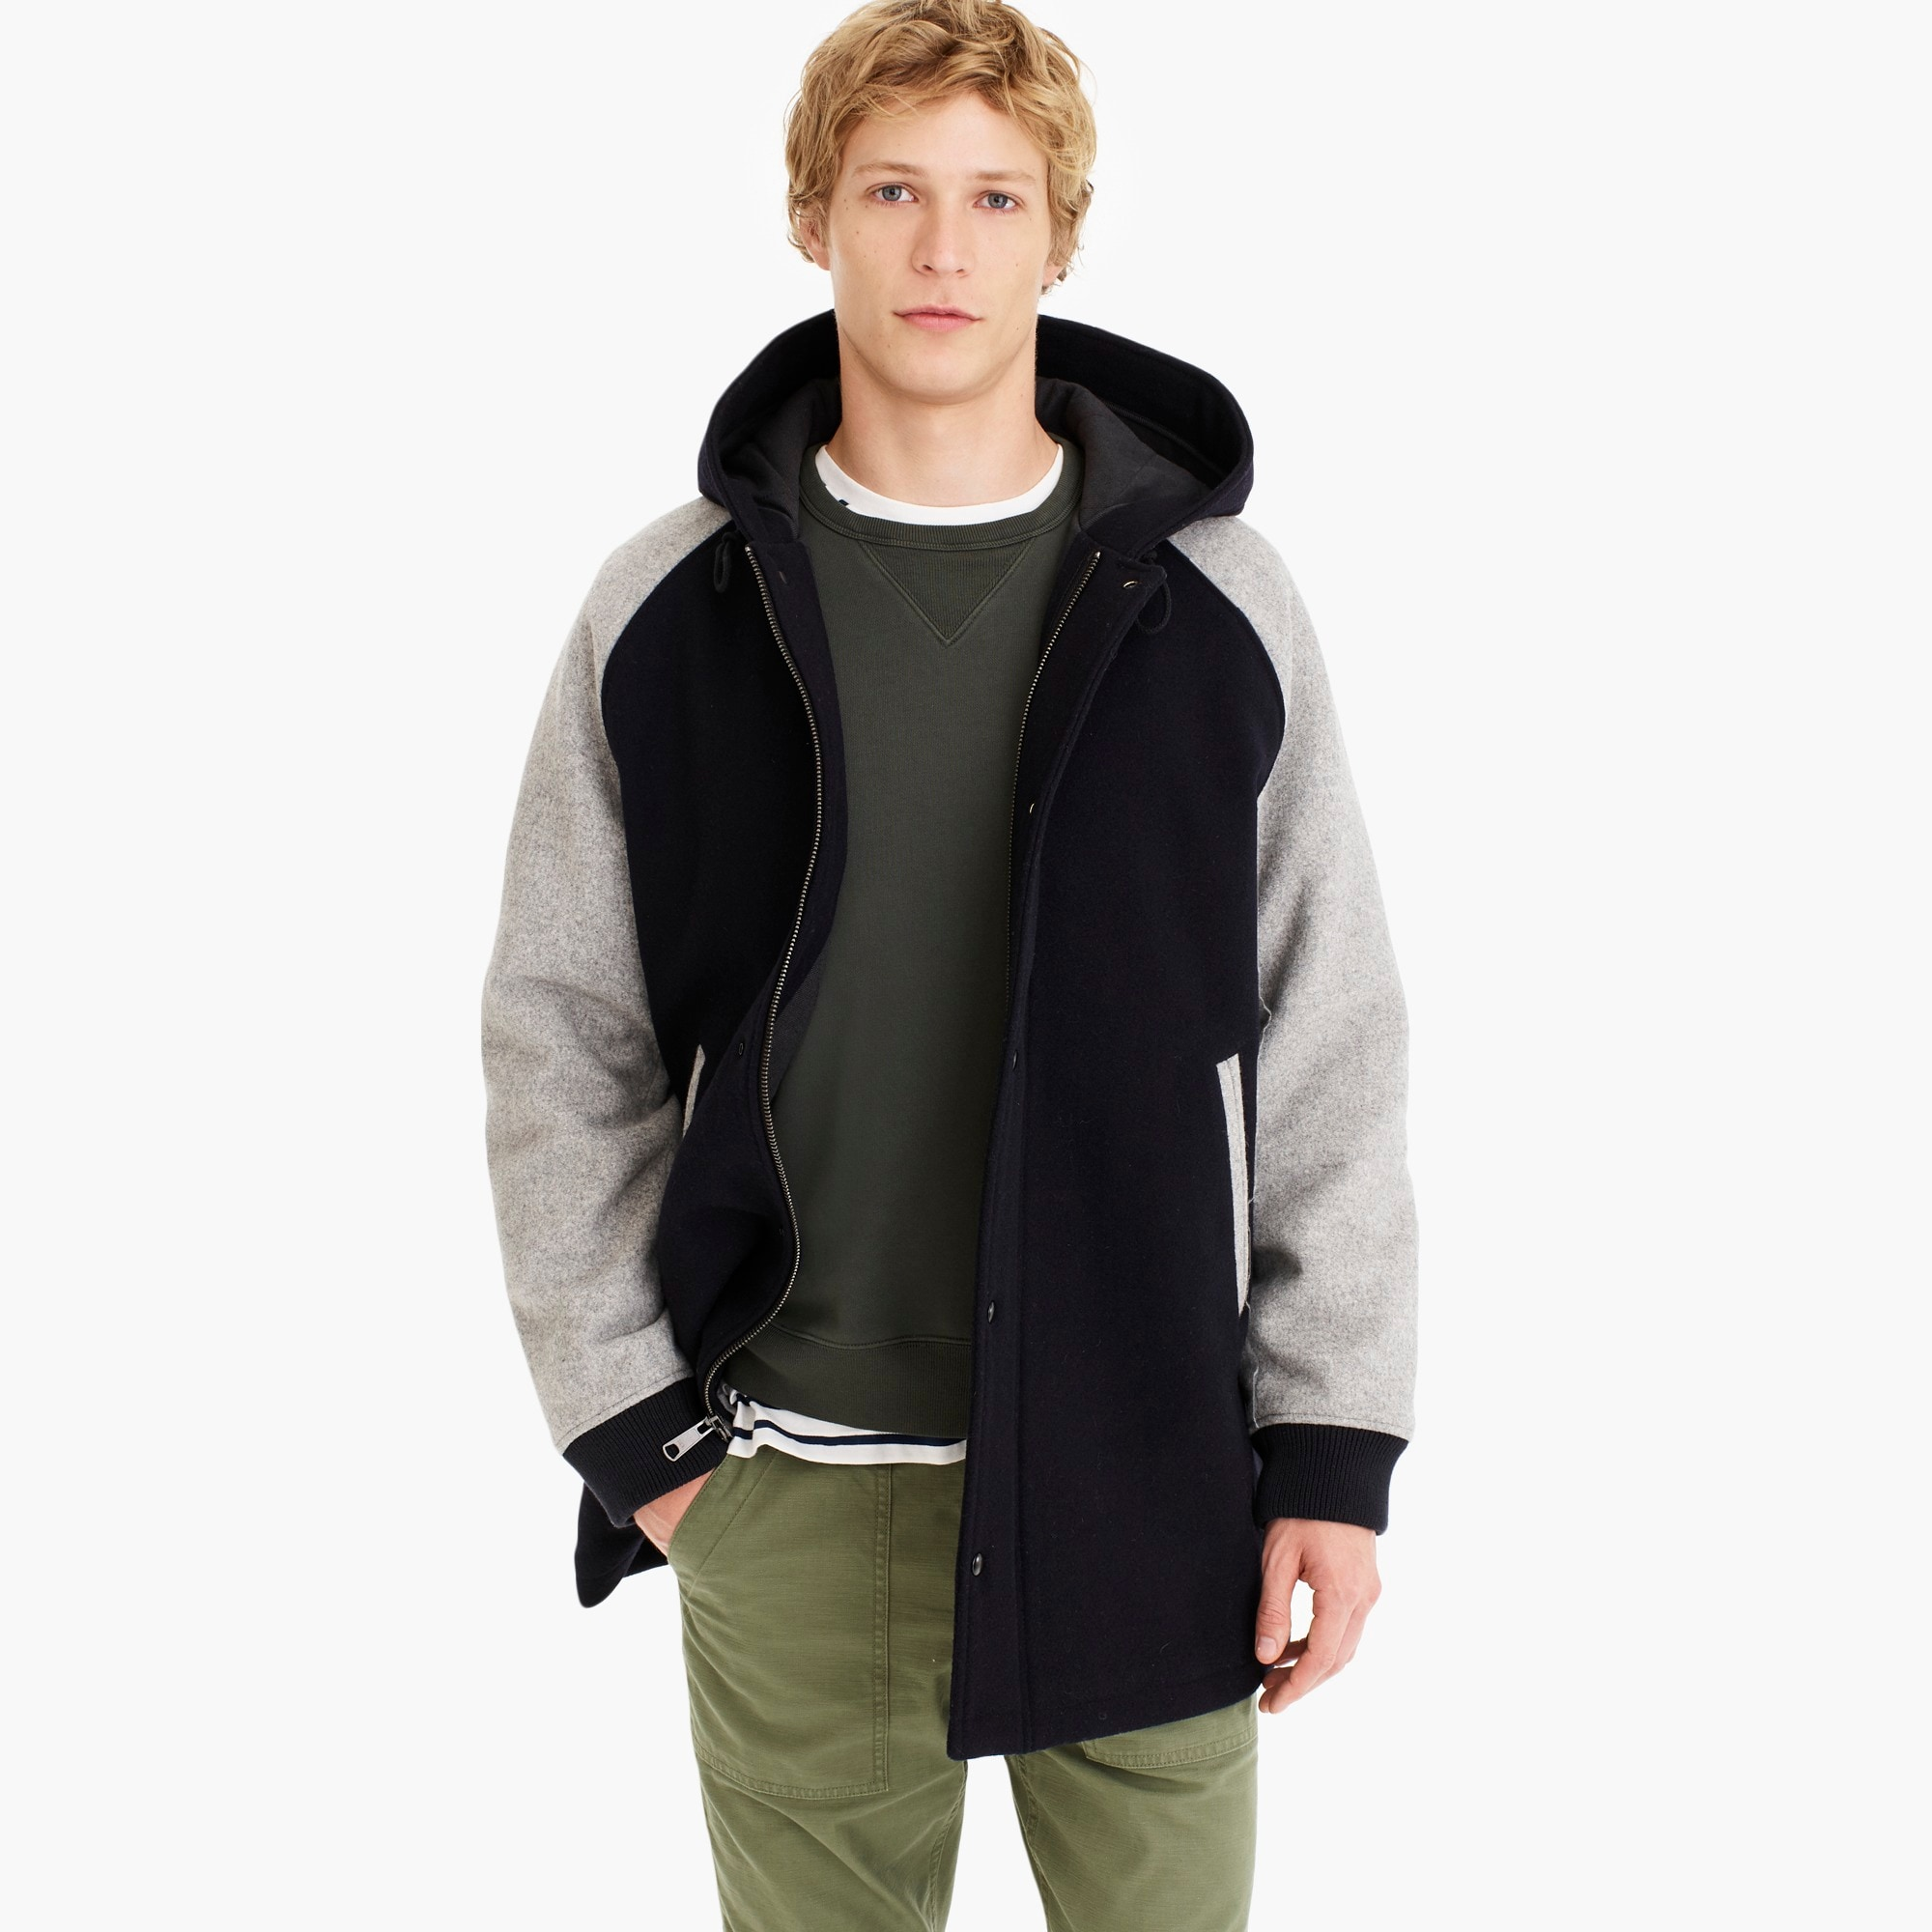 mens Wool-nylon sideline jacket